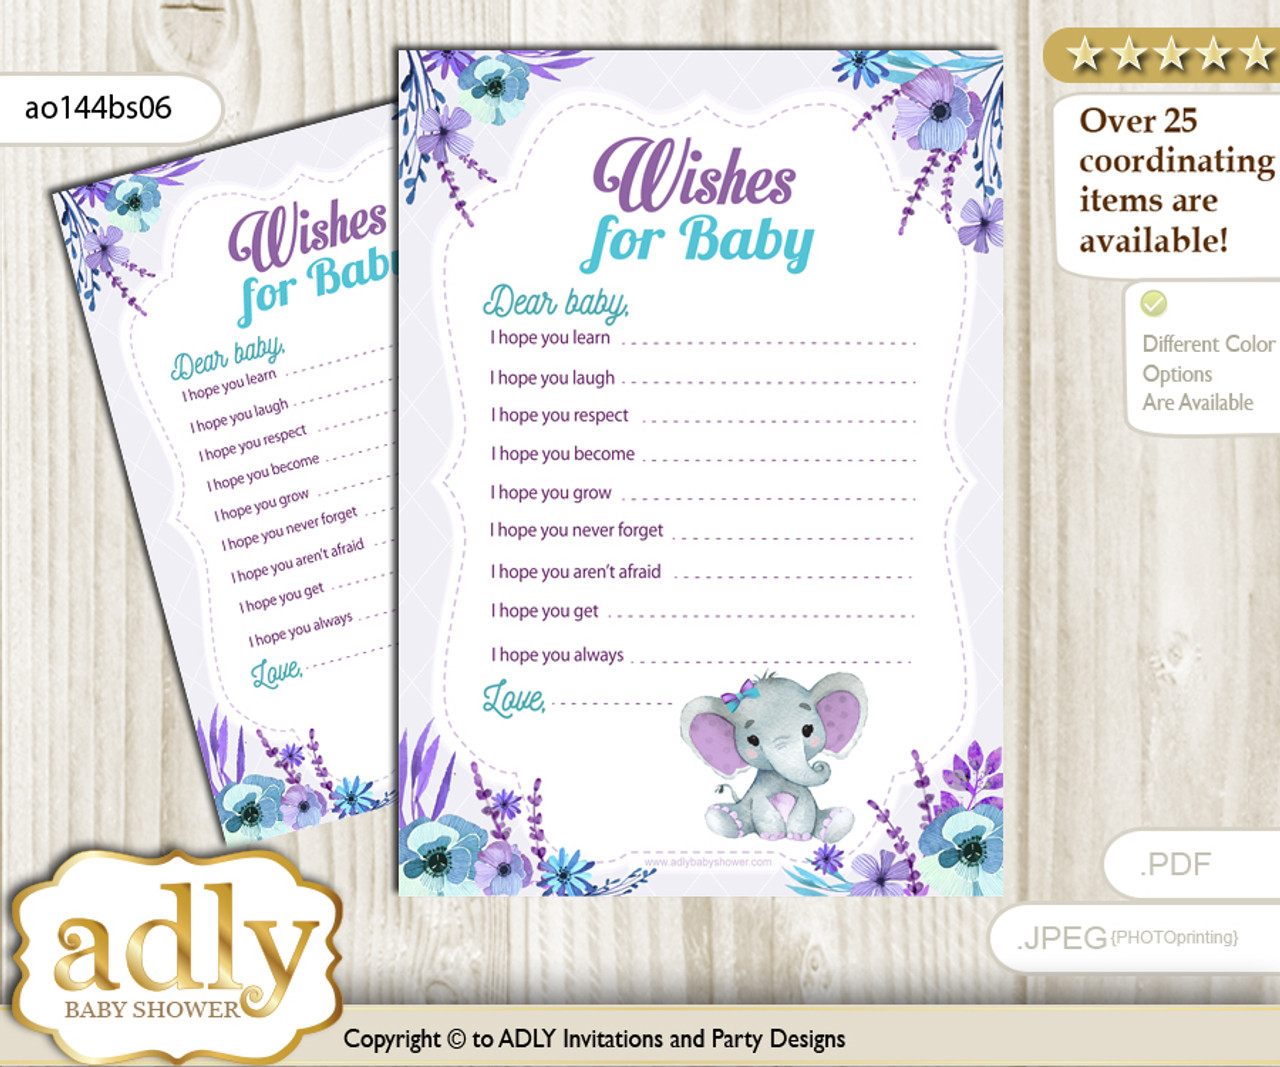 picture relating to Wishes for Baby Printable identify Elephant Female Wants for a Little one, Effectively Wants for a Very little Lady Printable Card, floral, Pink Teal n